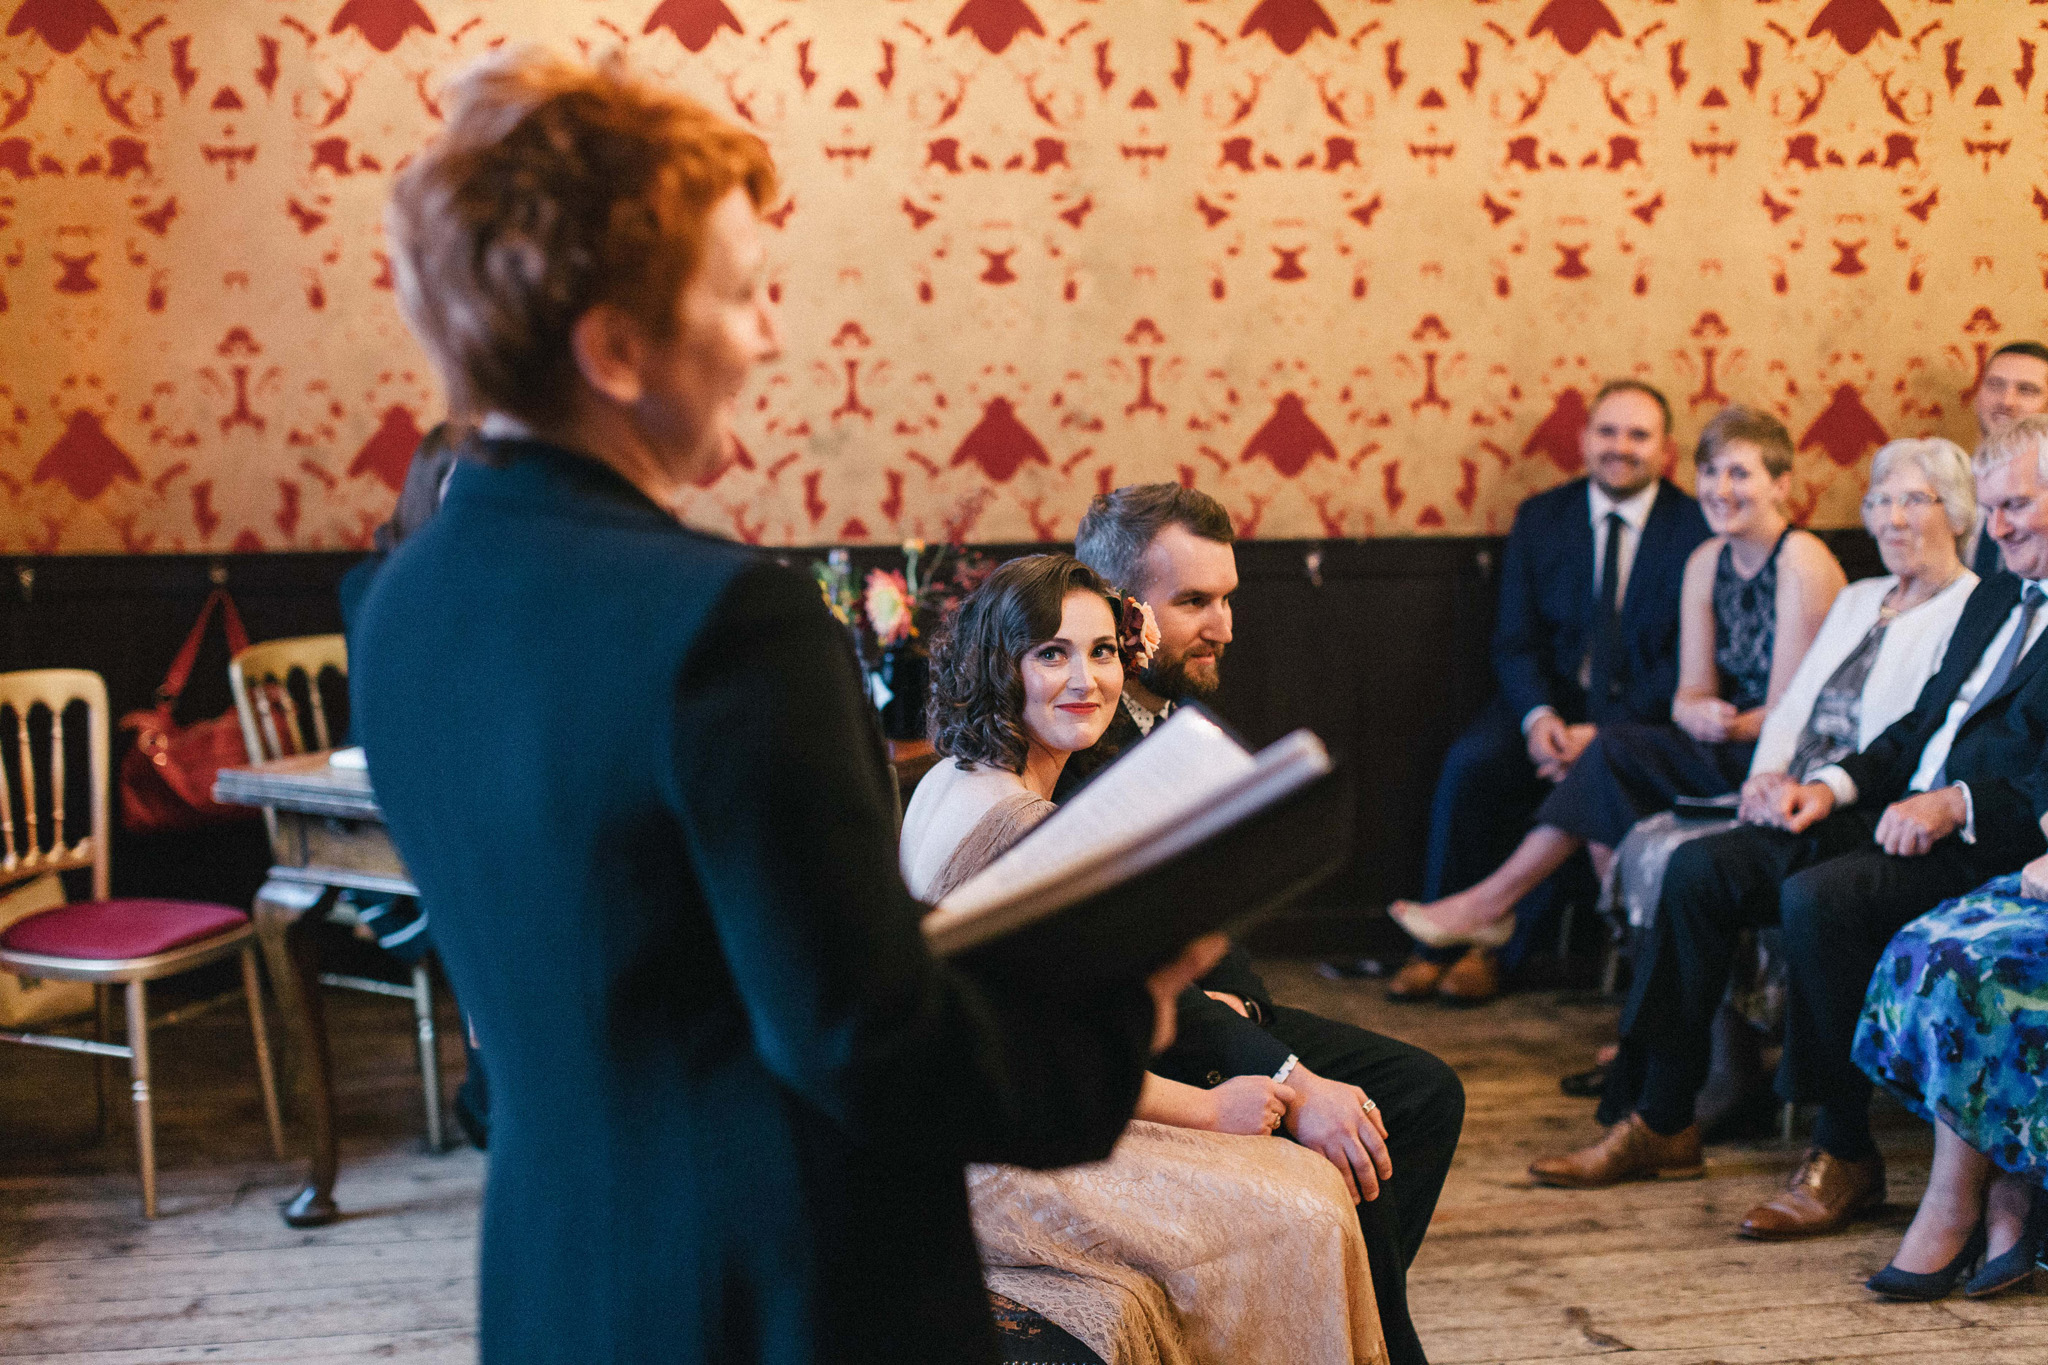 Wedding at The Bell in Ticehurst, Sussex. Photography by East Sussex photographer Emma Gutteridge